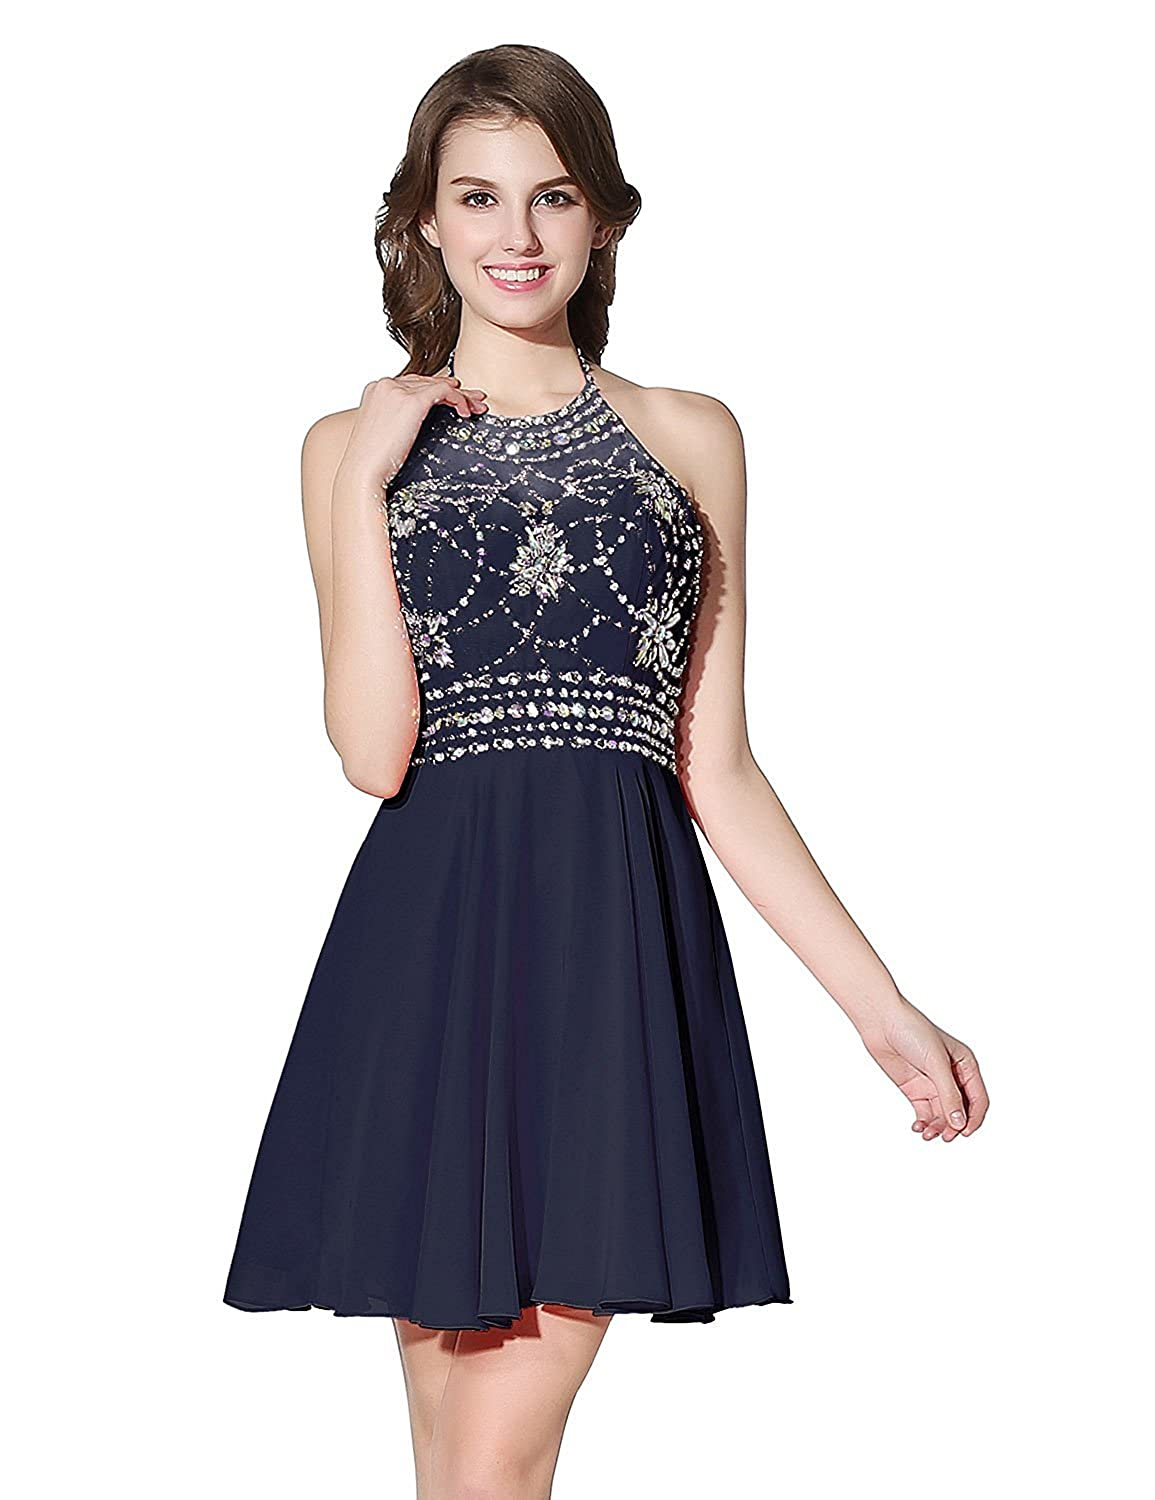 394navy bluee Sarahbridal Women's Short Tulle Beading Homecoming Dresses 2019 Prom Party Gowns